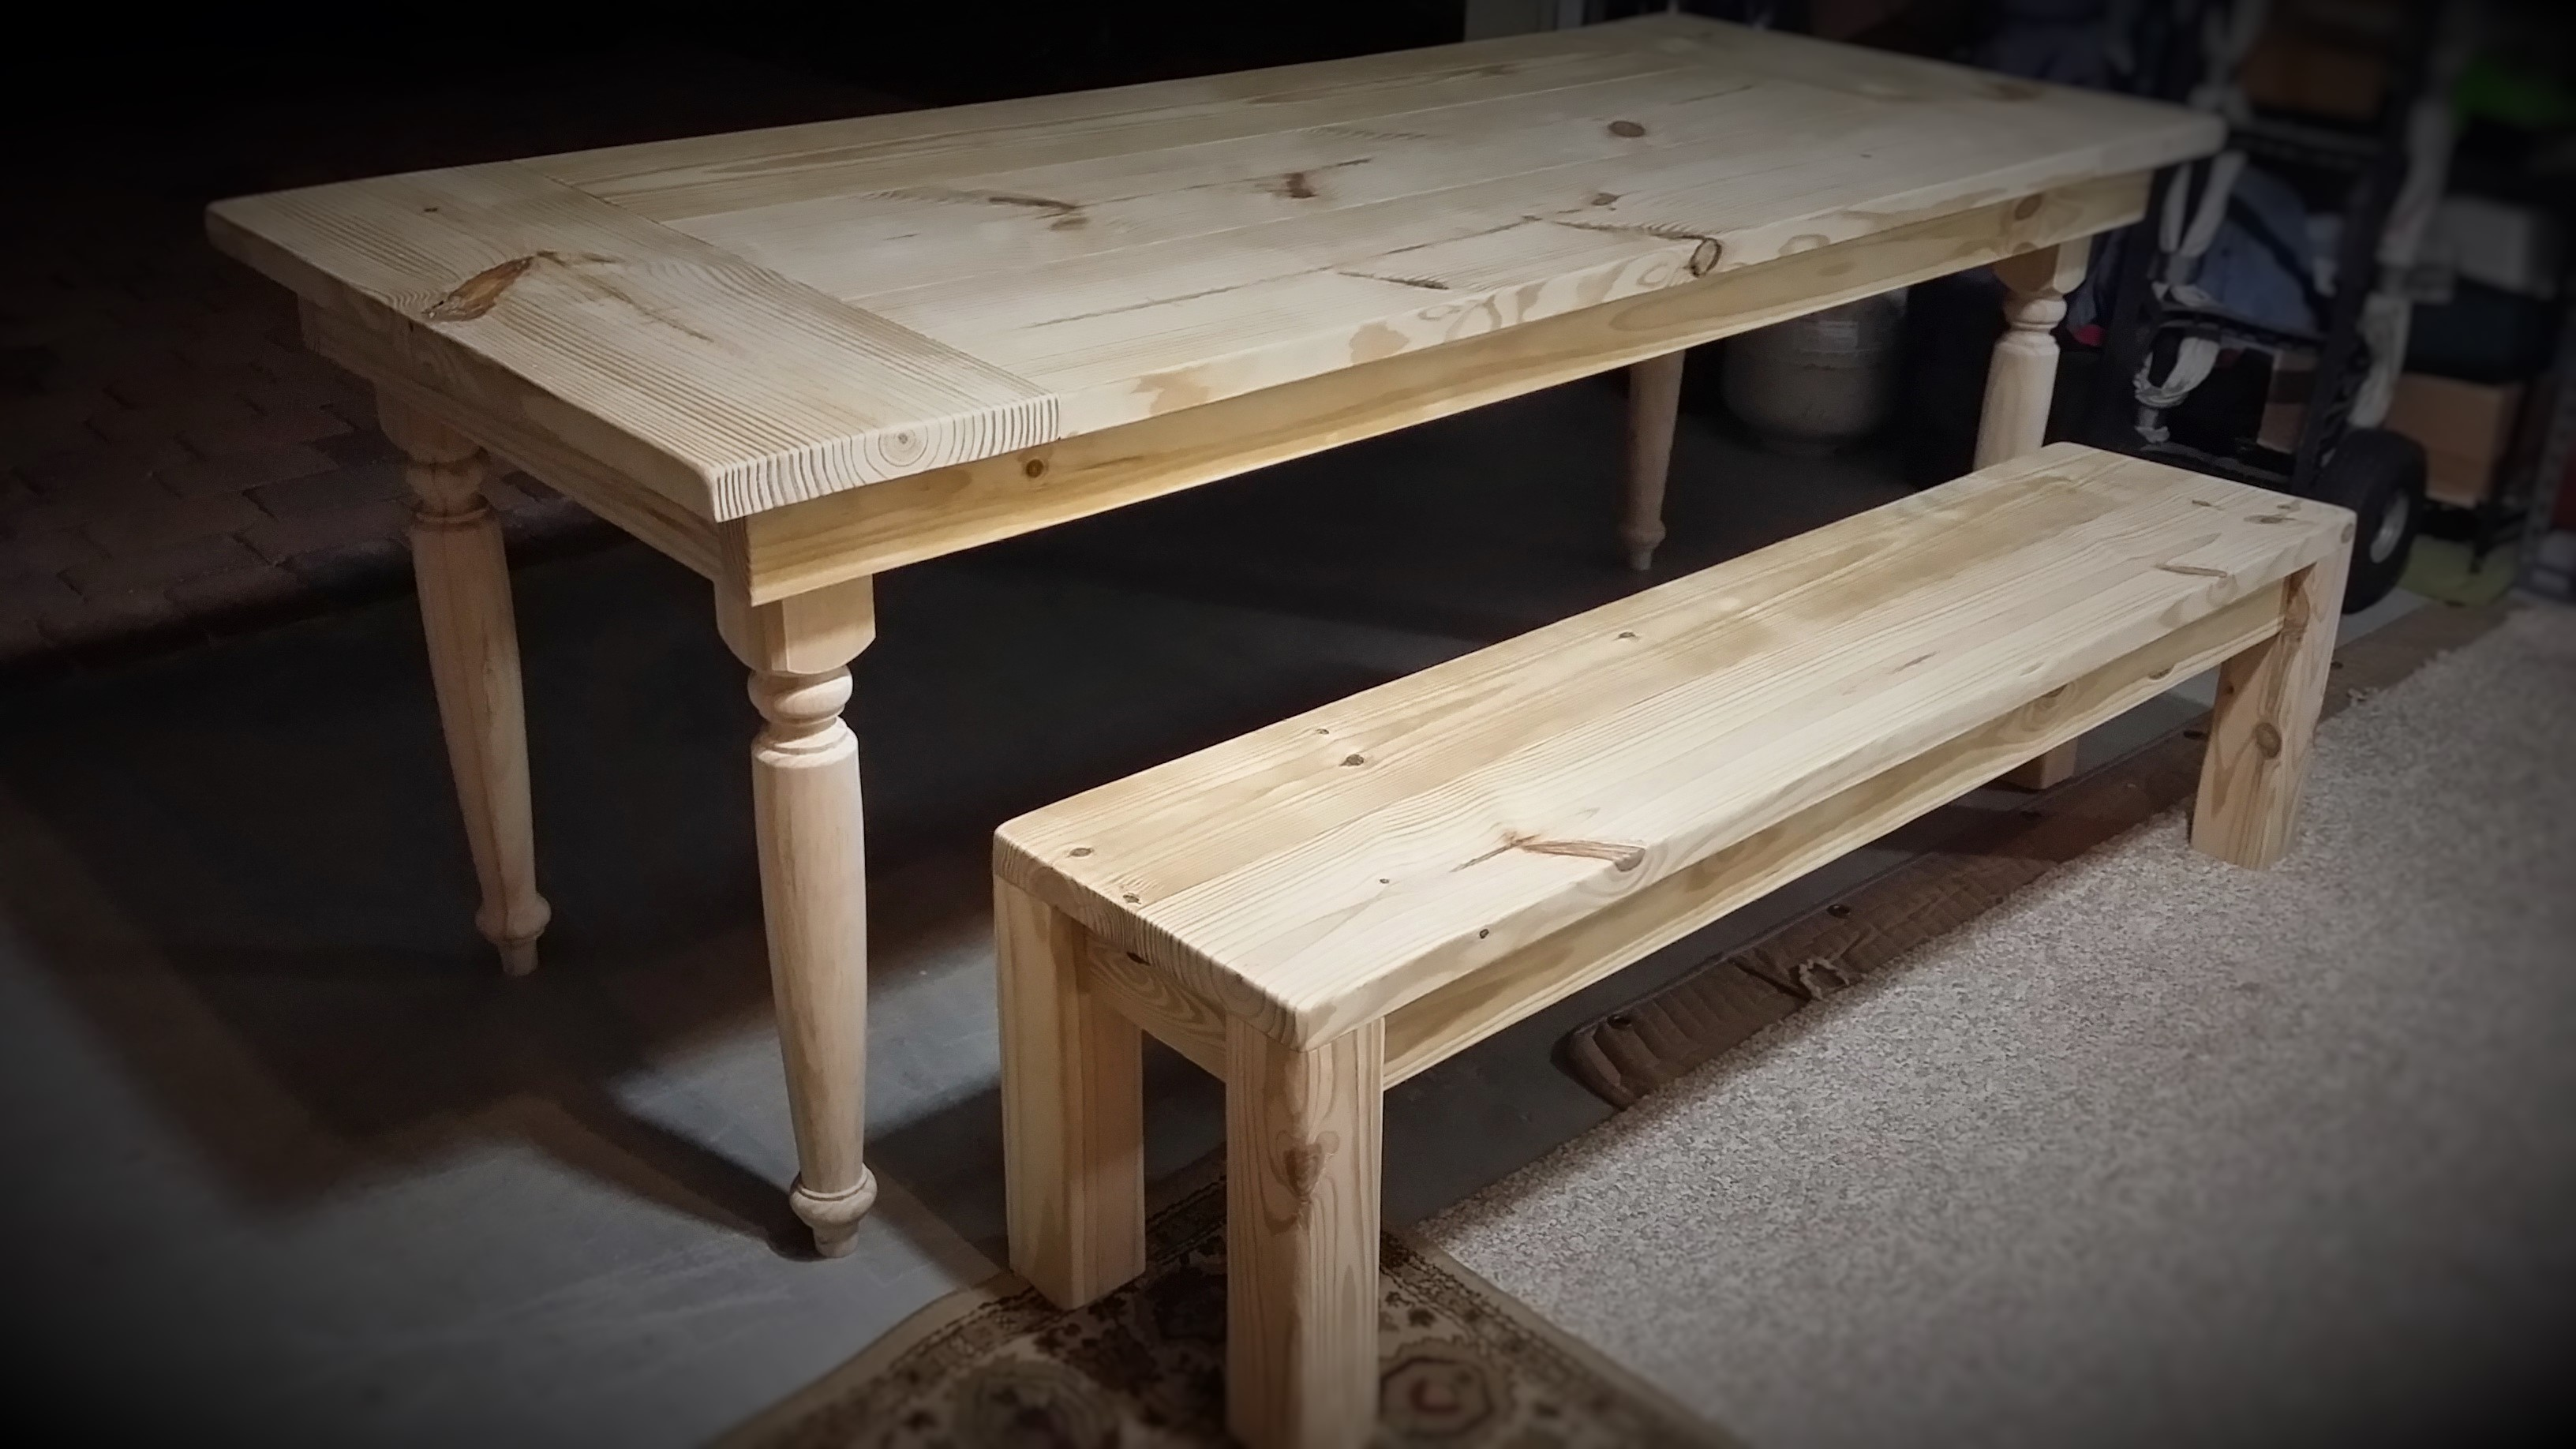 homepage_slider_15_sanded_table_spindle_legs_and_bench